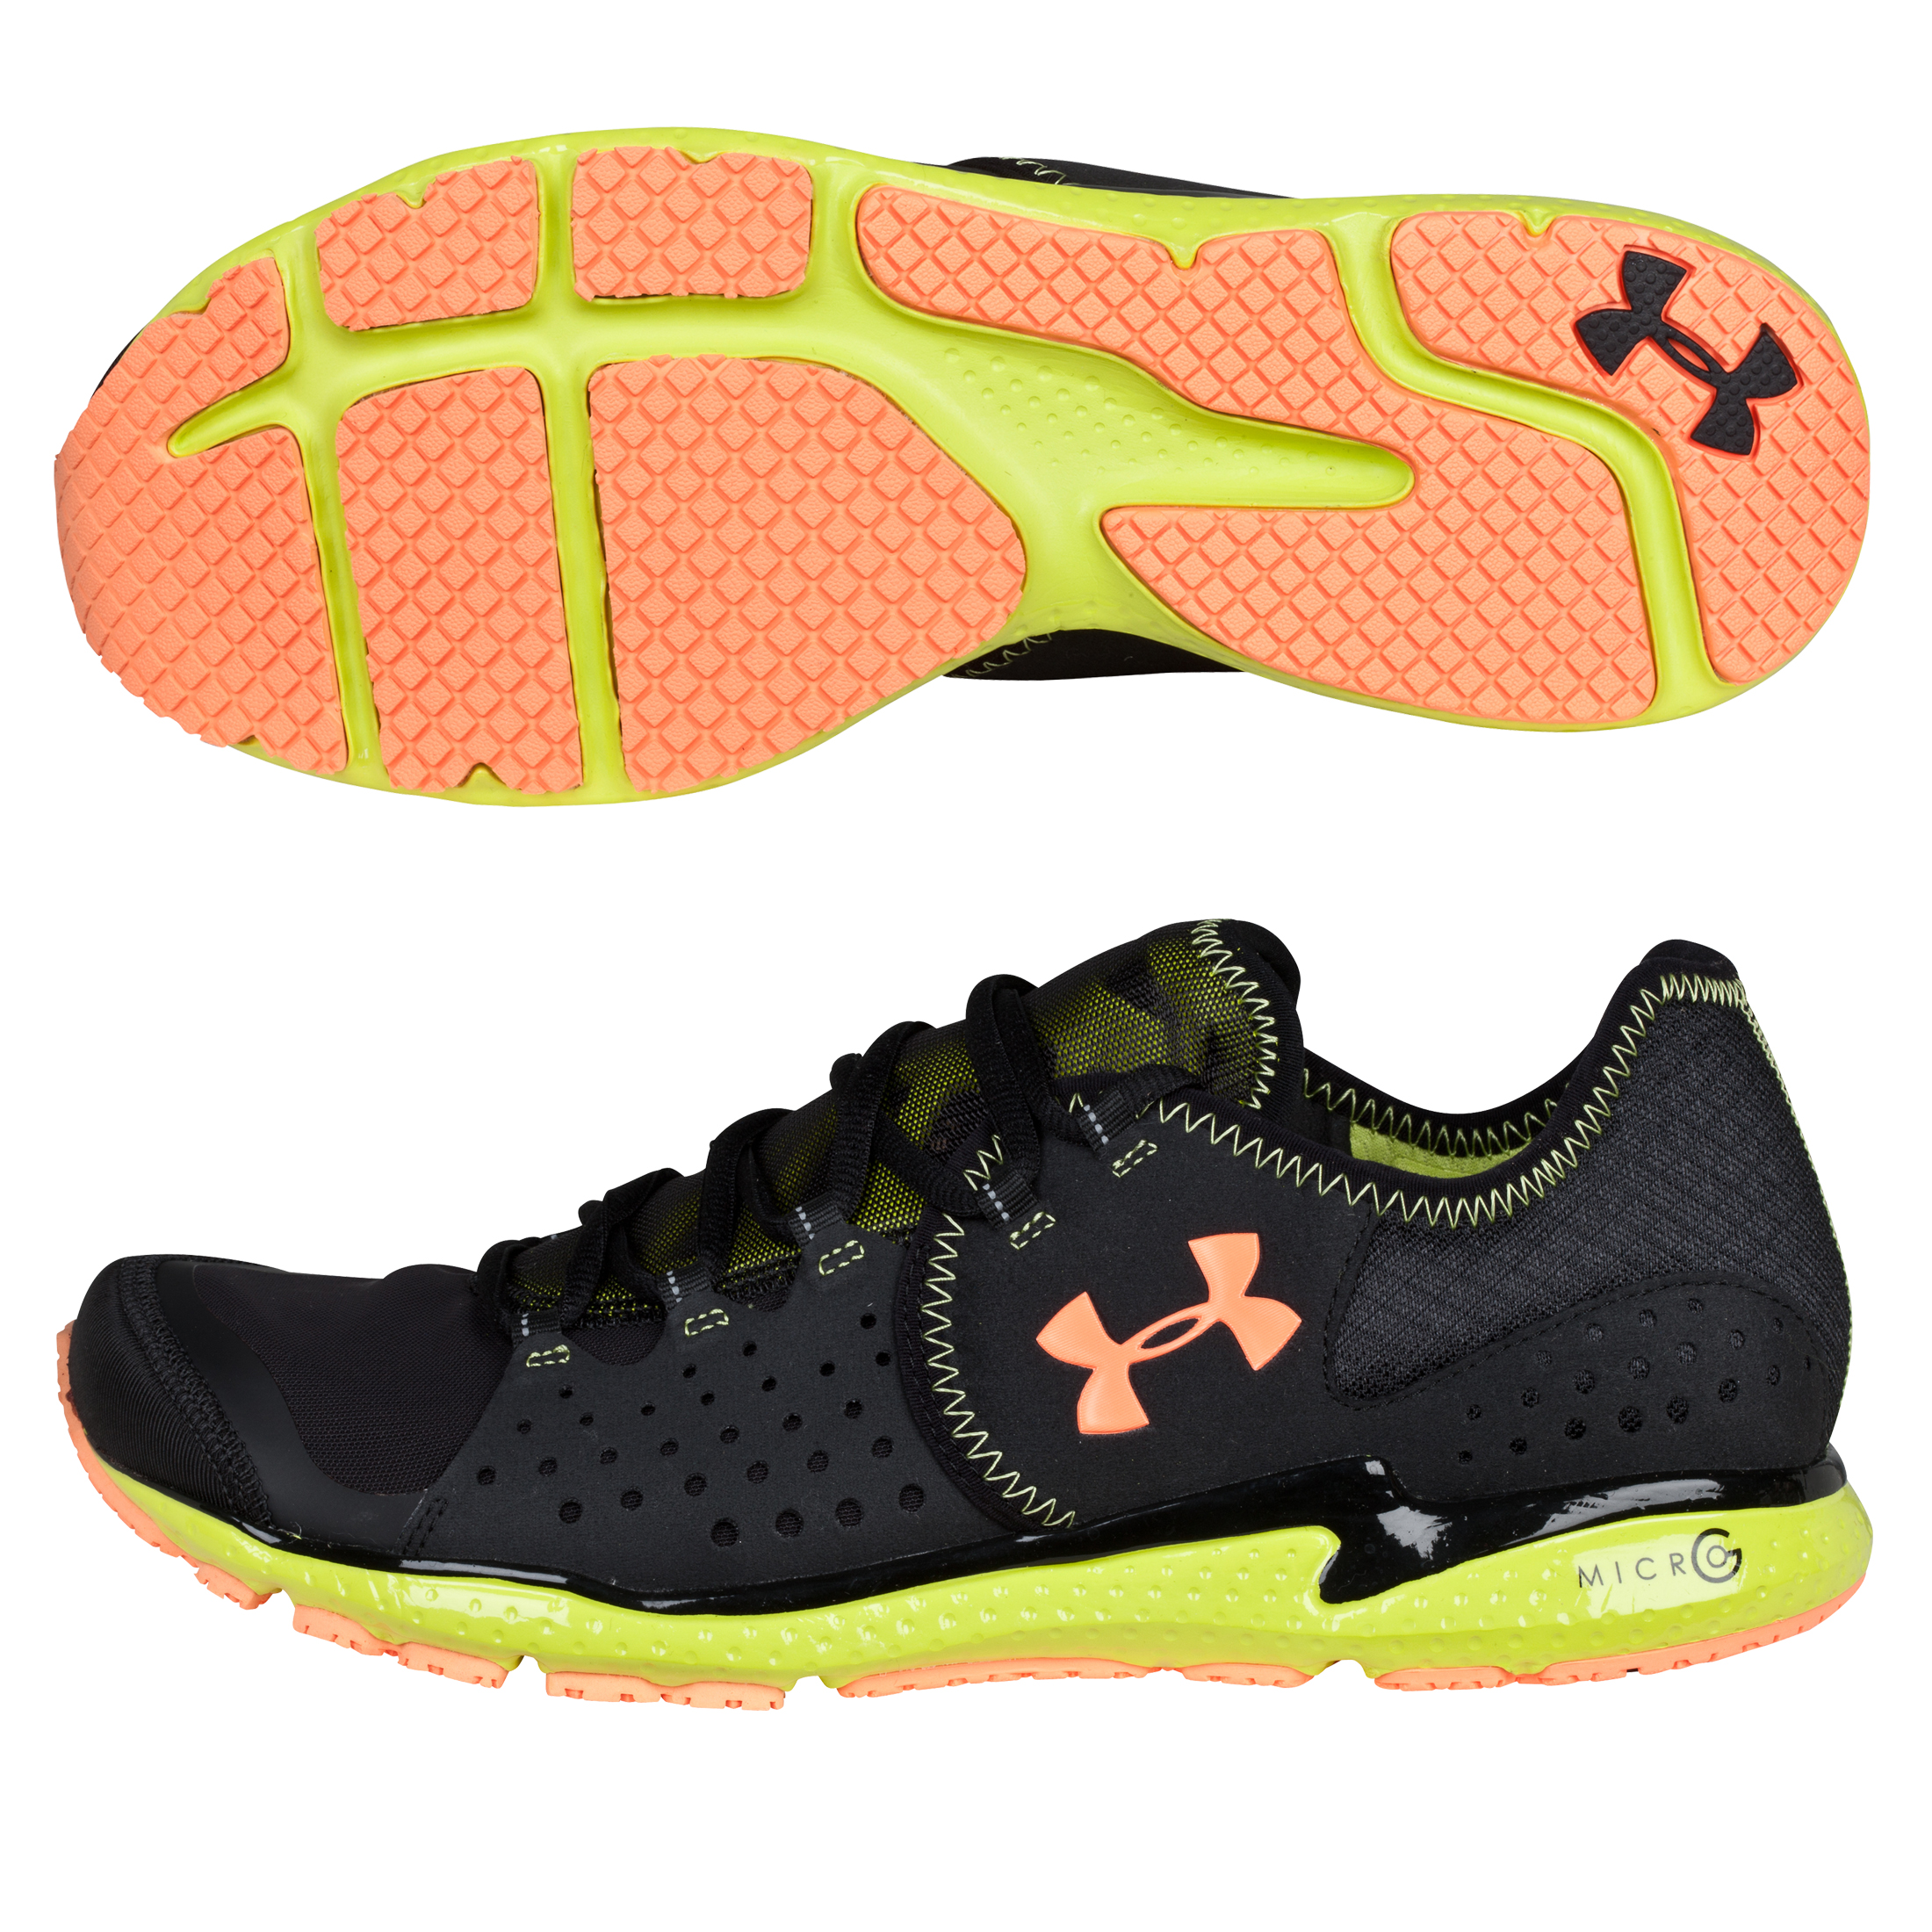 Under Armour Micro G Mantis Trainer - Black/Bitter Lime/Orange